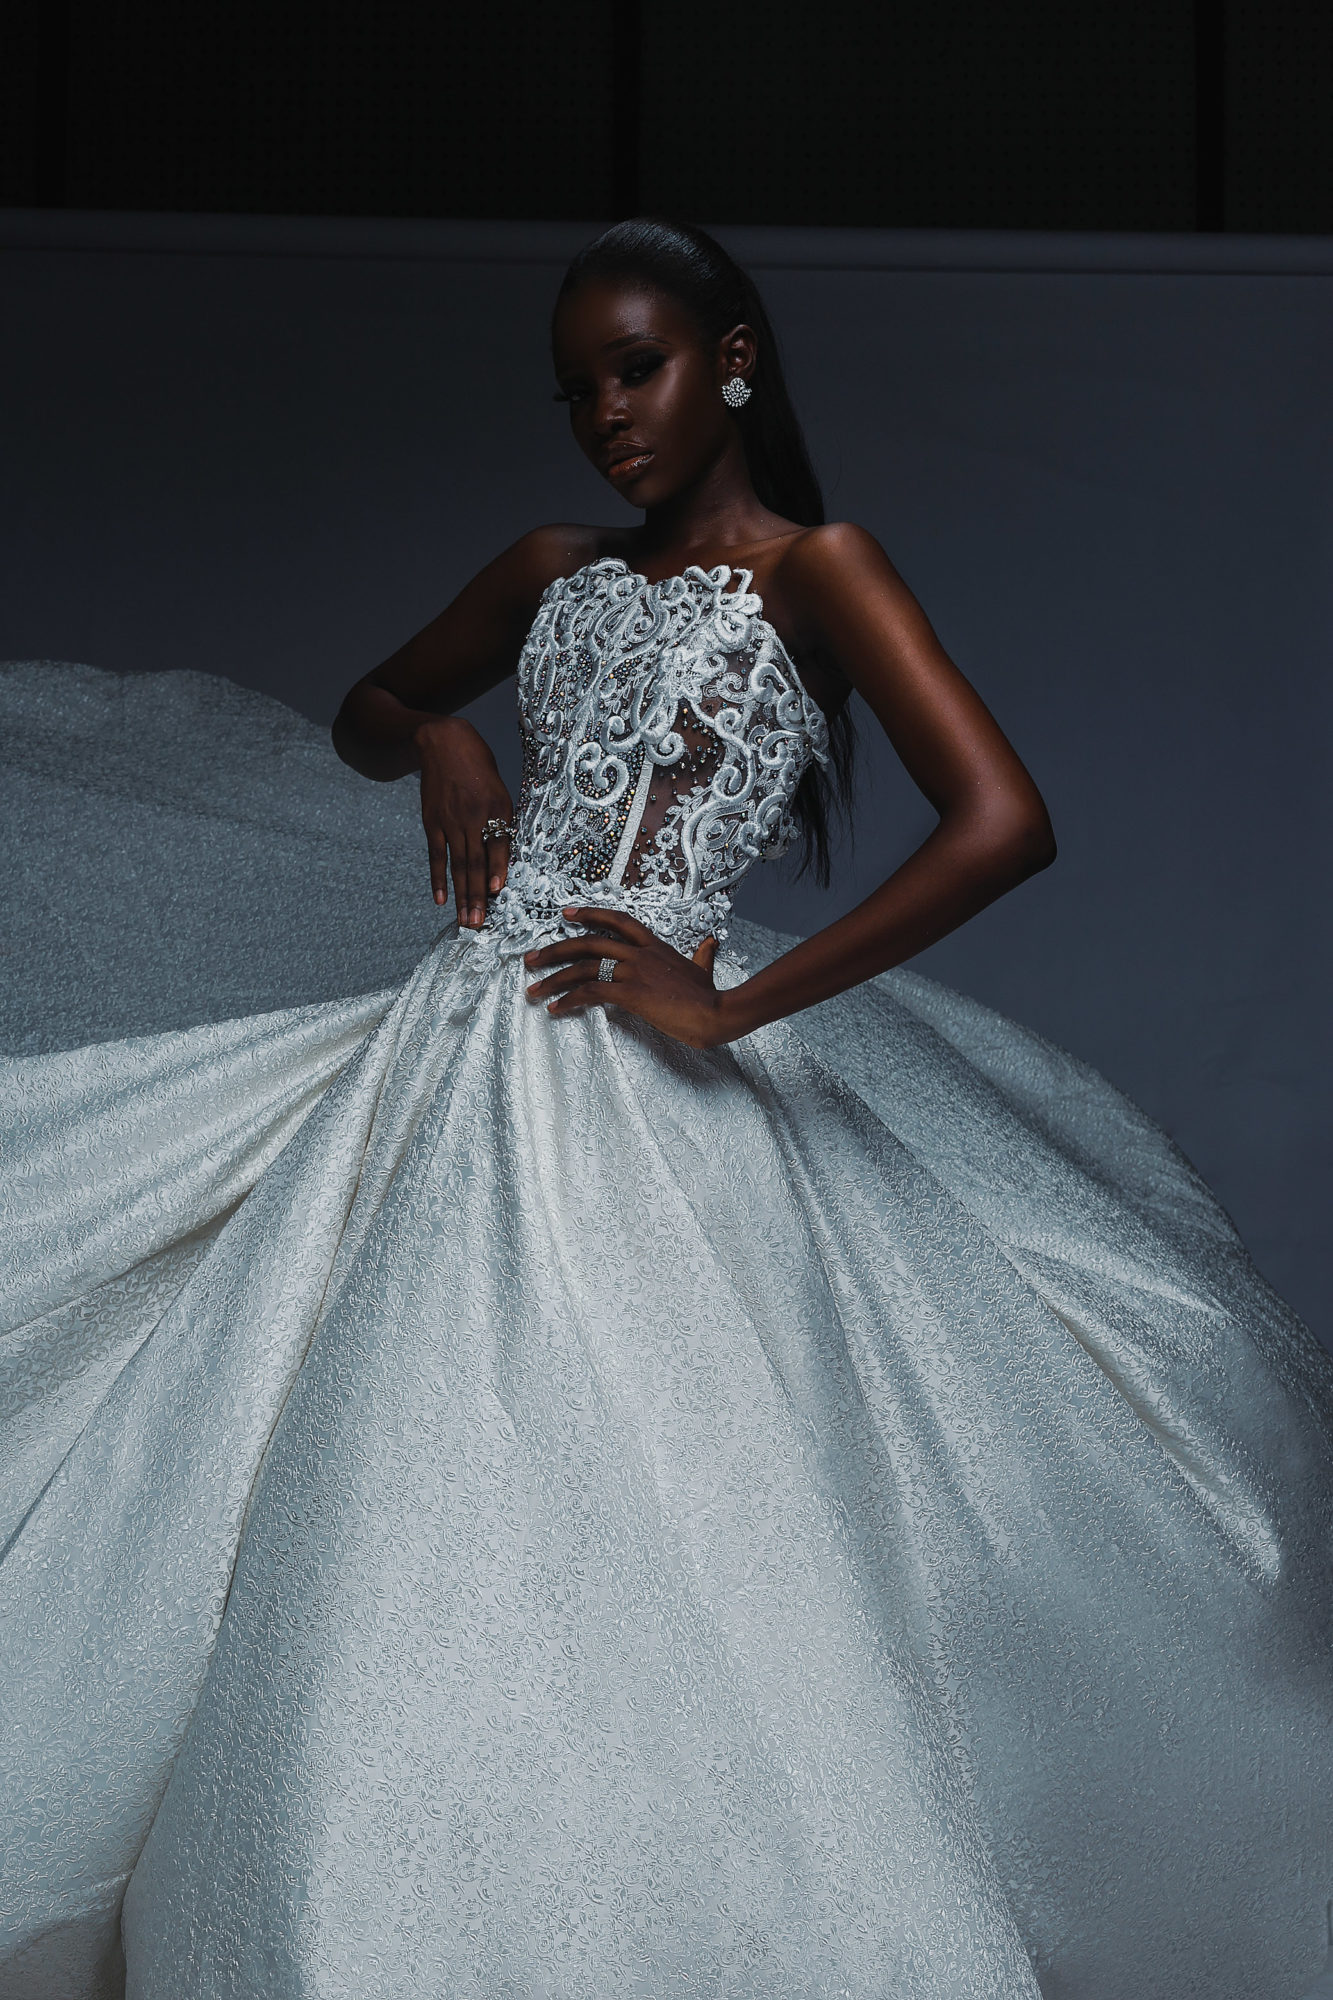 Just Say Yes To These Deluxe Bridal Dresses By Zhalima Graziani